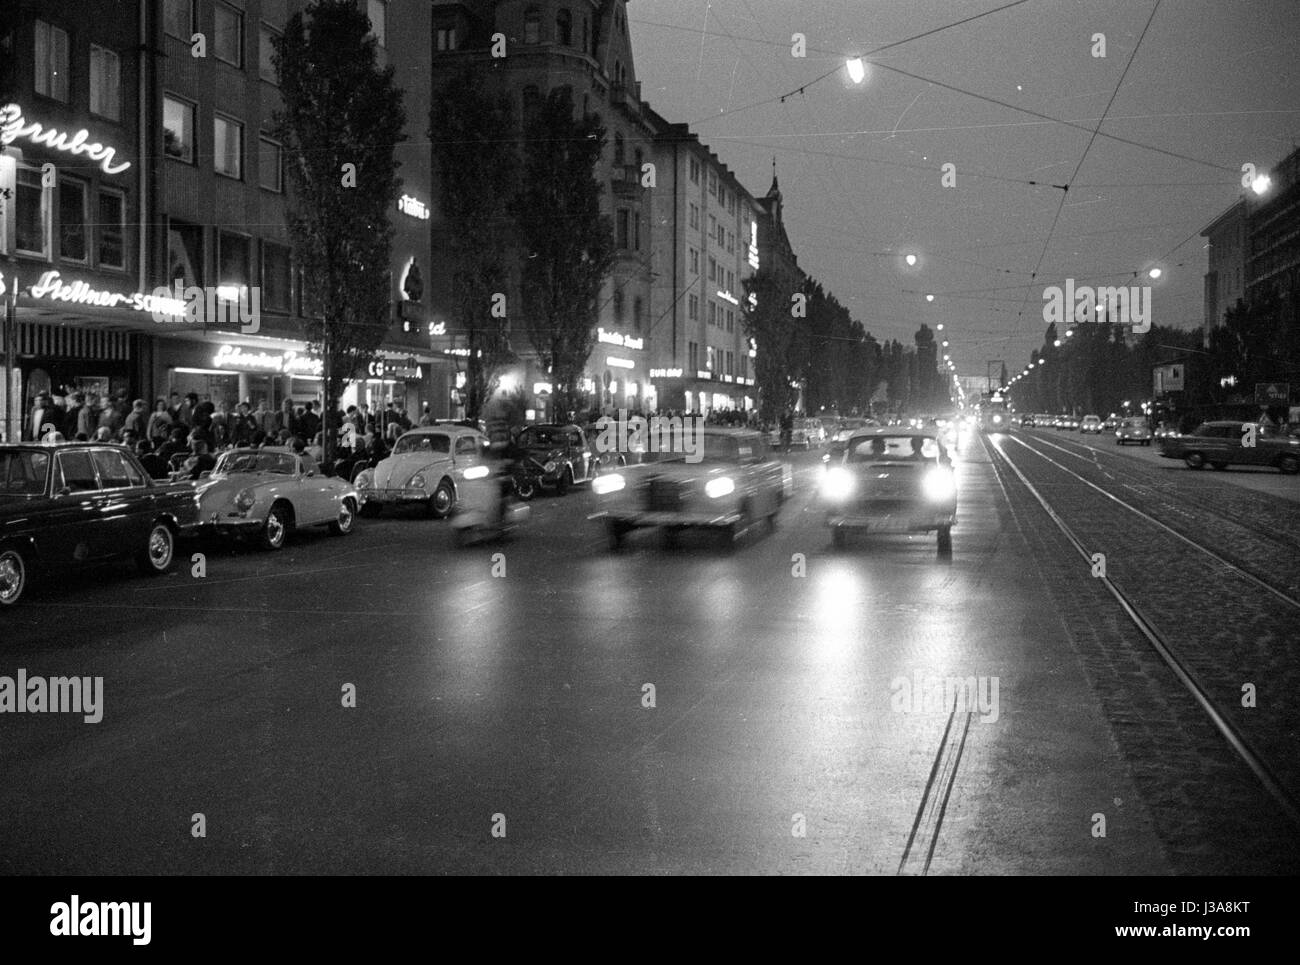 The Leopoldstrasse in Munich in the evening, 1963 - Stock Image